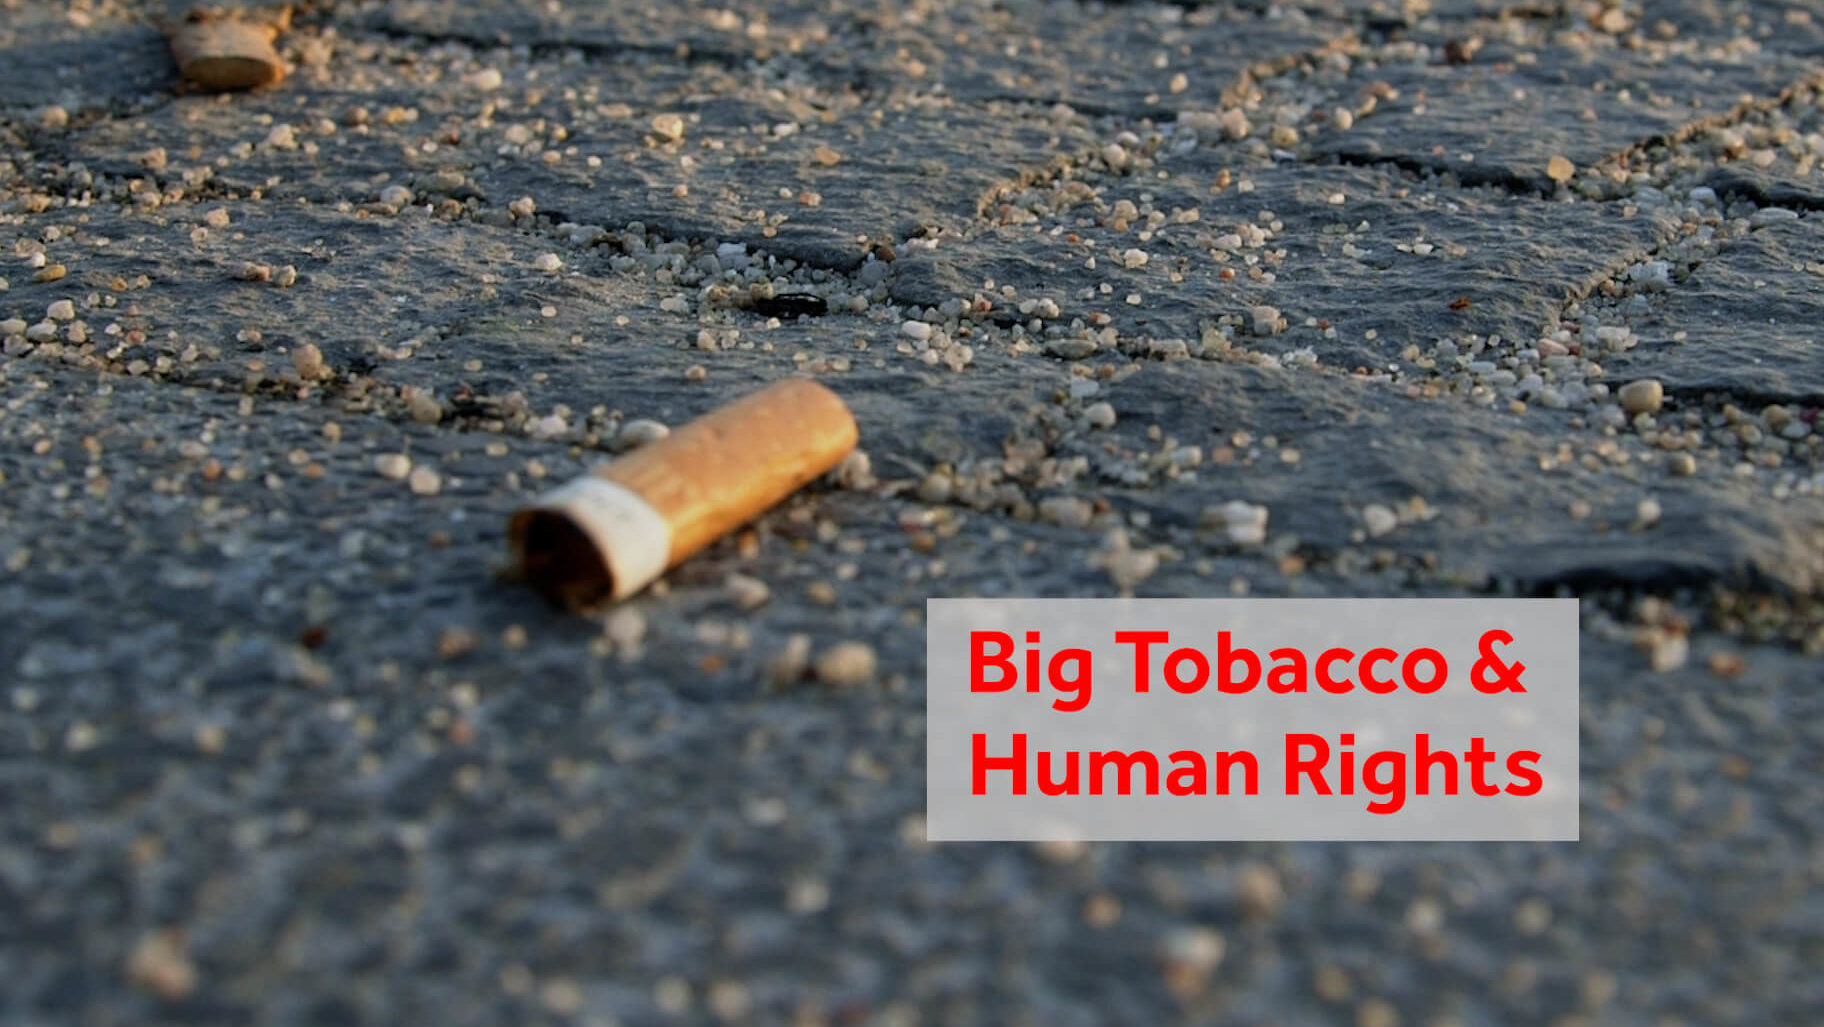 Human Rights Tools and the Fight Against Big Tobacco